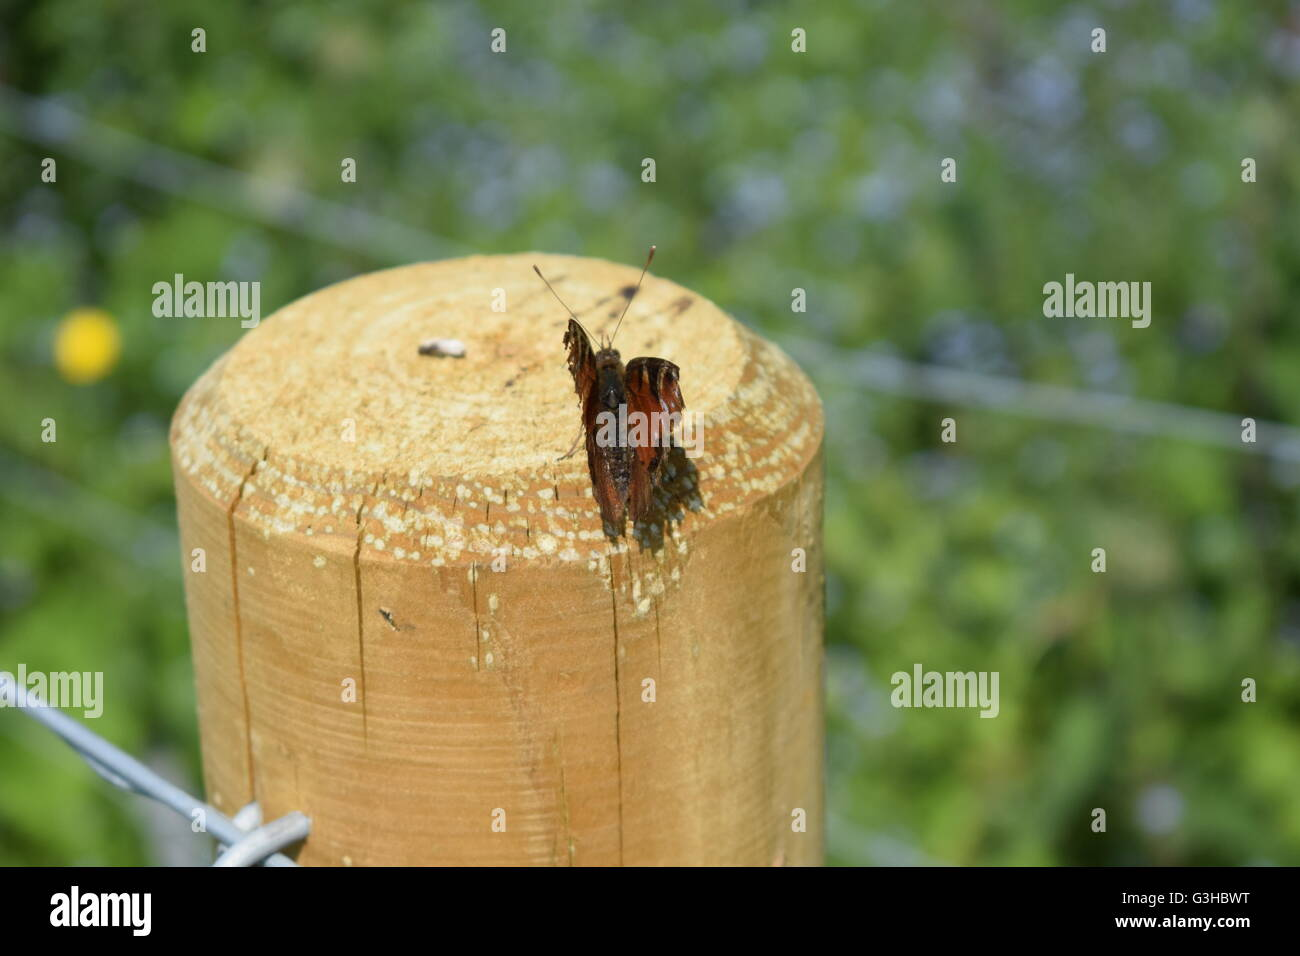 Red Admiral butterfly with broken damaged wings on wooden fence post - Stock Image